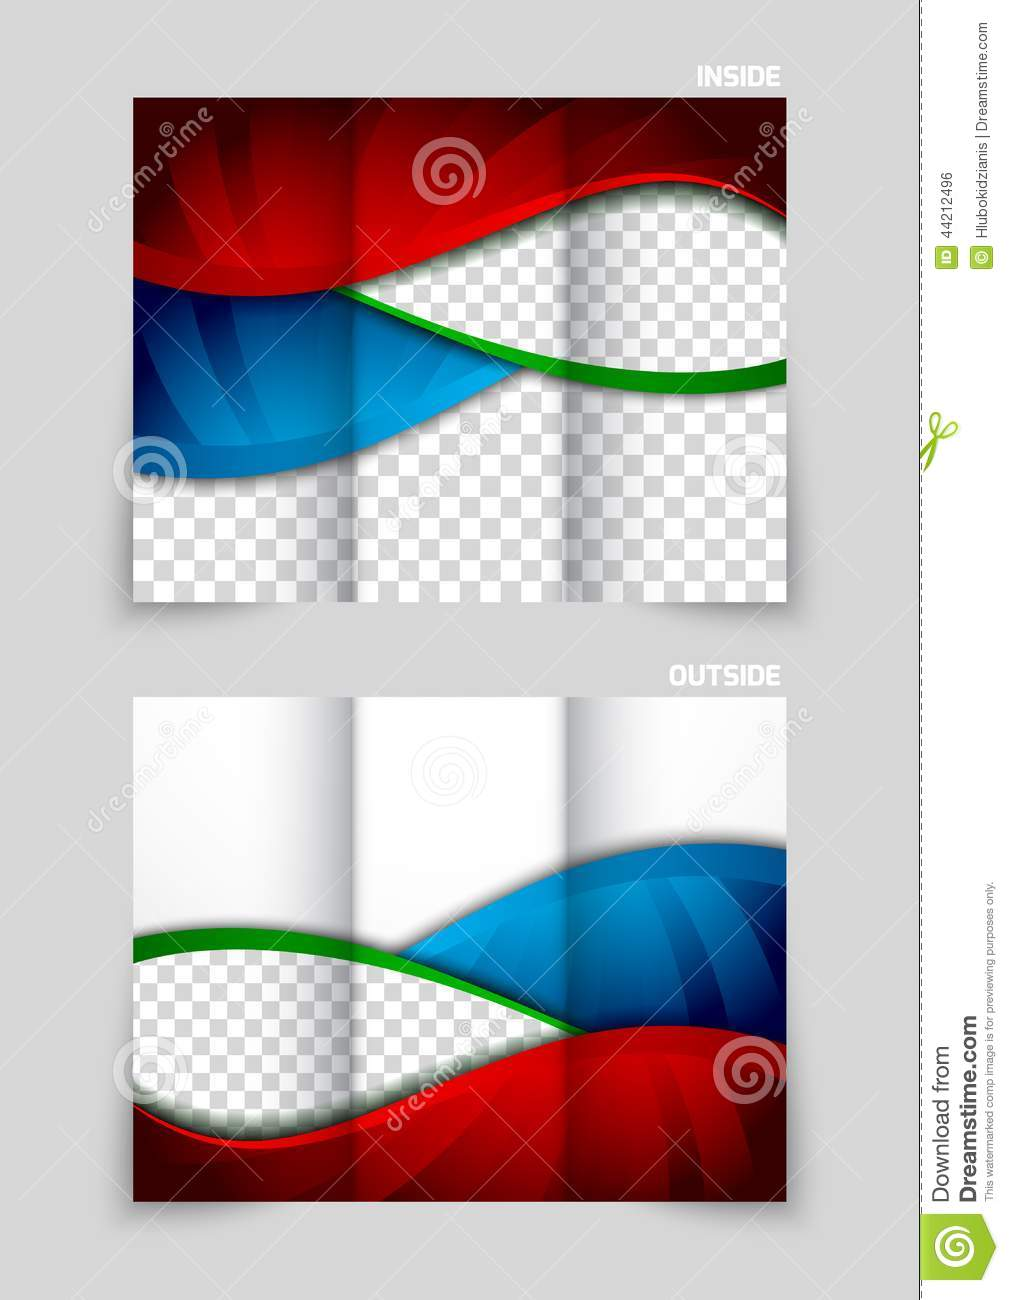 Trifold Brochure Template Design Stock Vector Illustration Of - Trifold brochure template